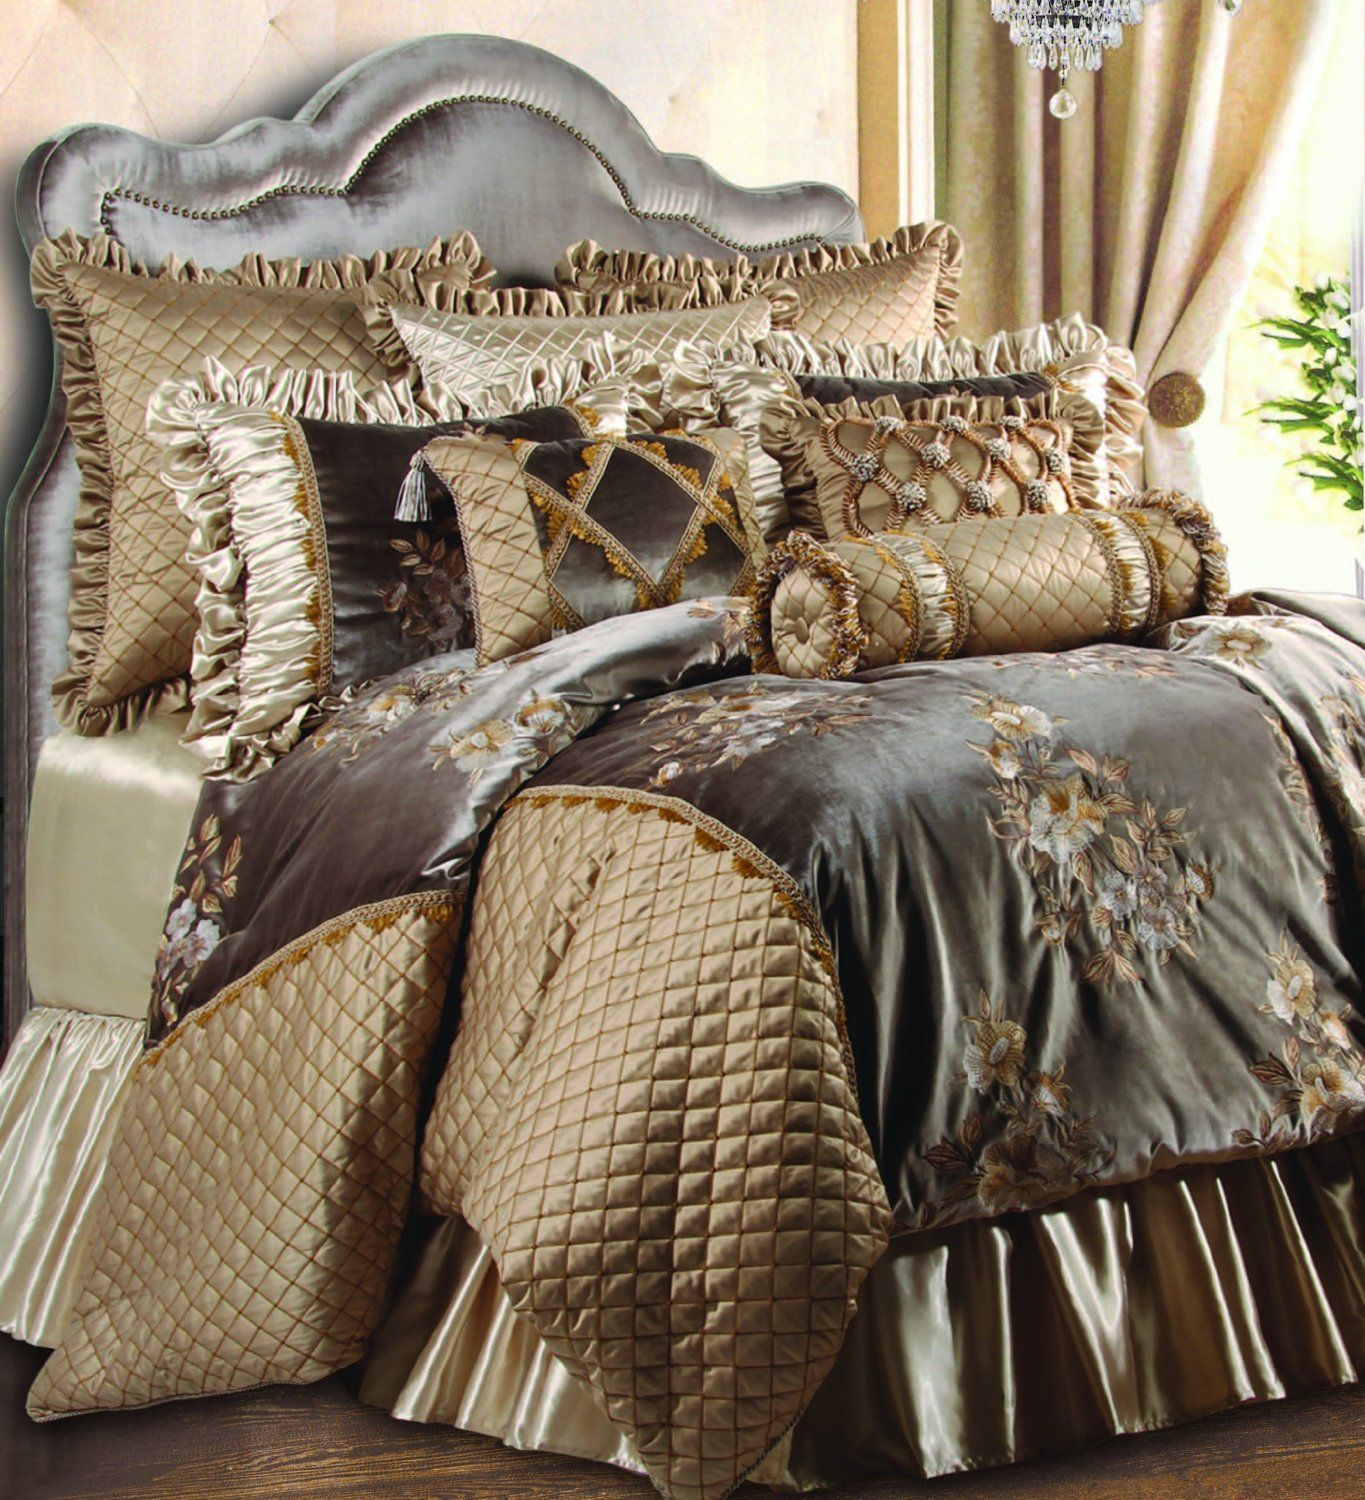 Luxury King Bedding Sets.Luxury Embroidered Velvet Gold And Brown Hue Bedding Sets In